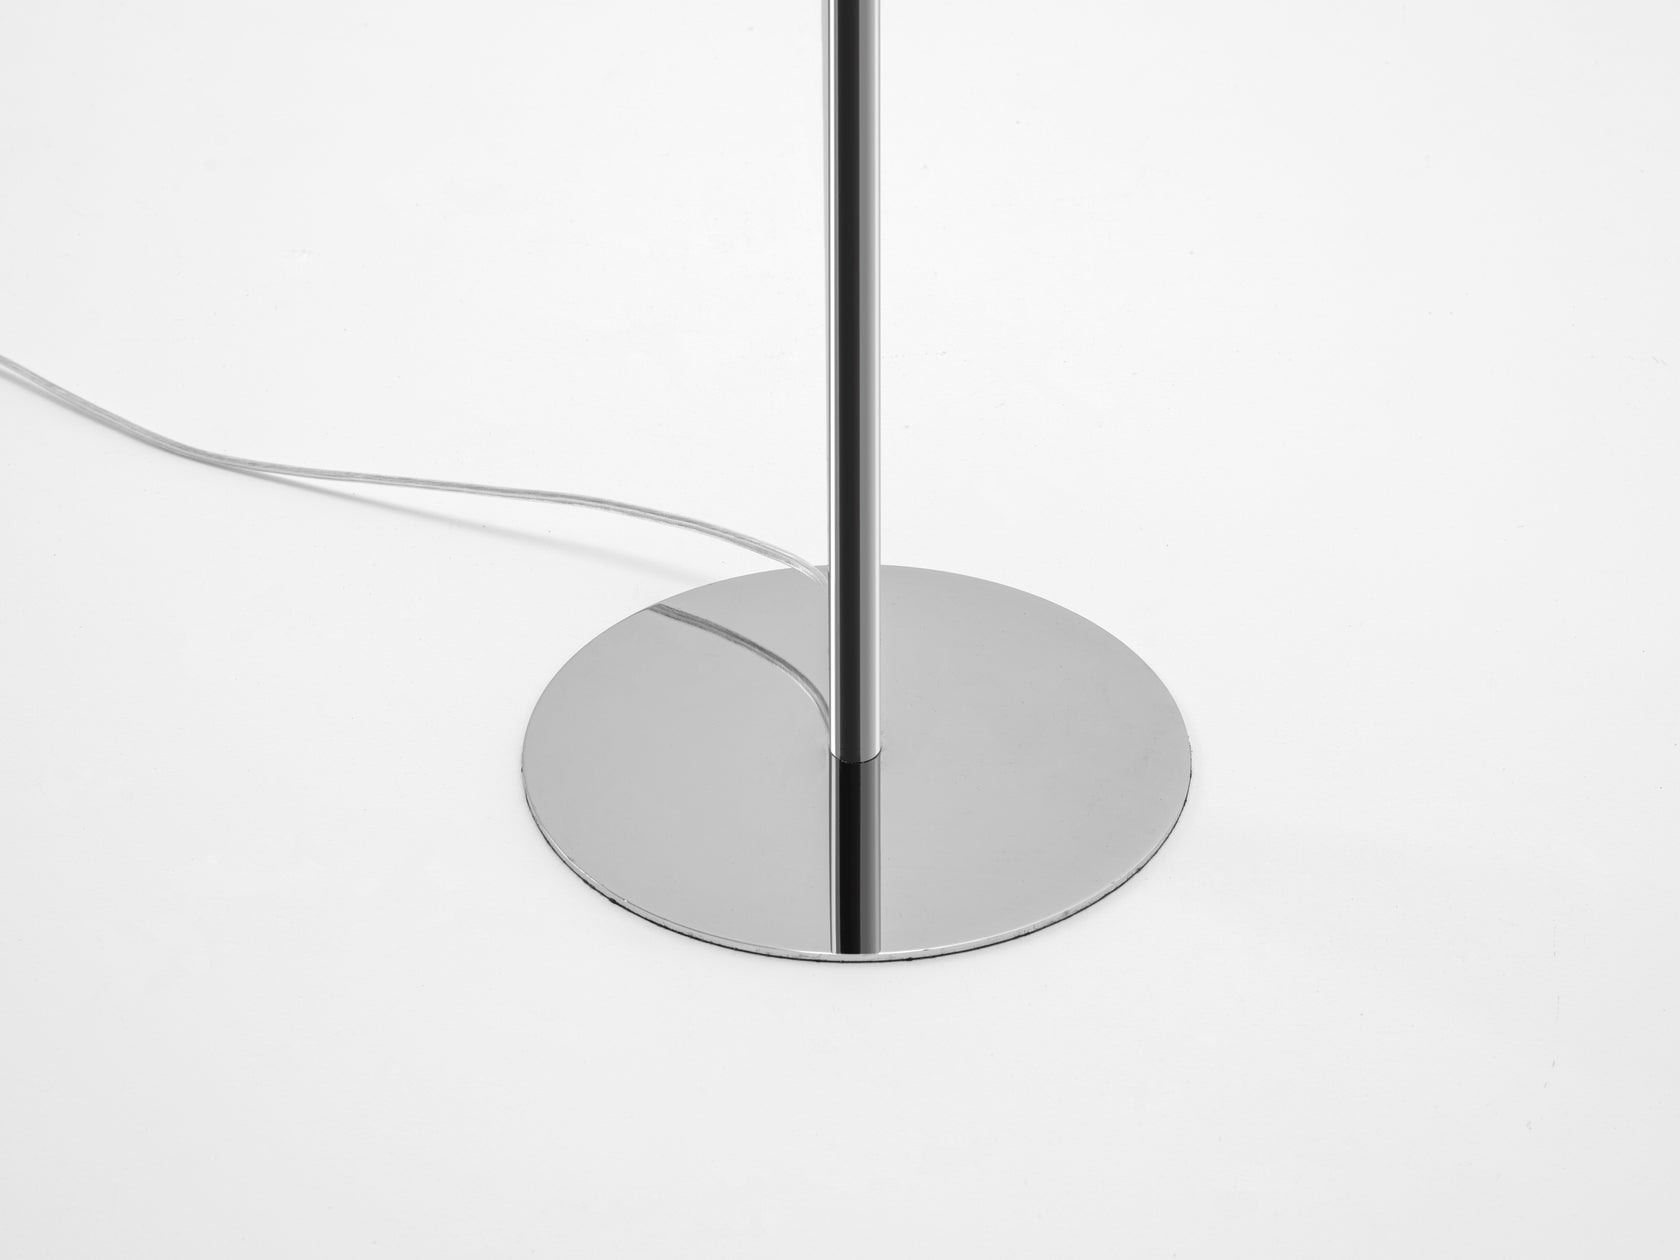 Reflective floor lamp chrome | base | houseof.com